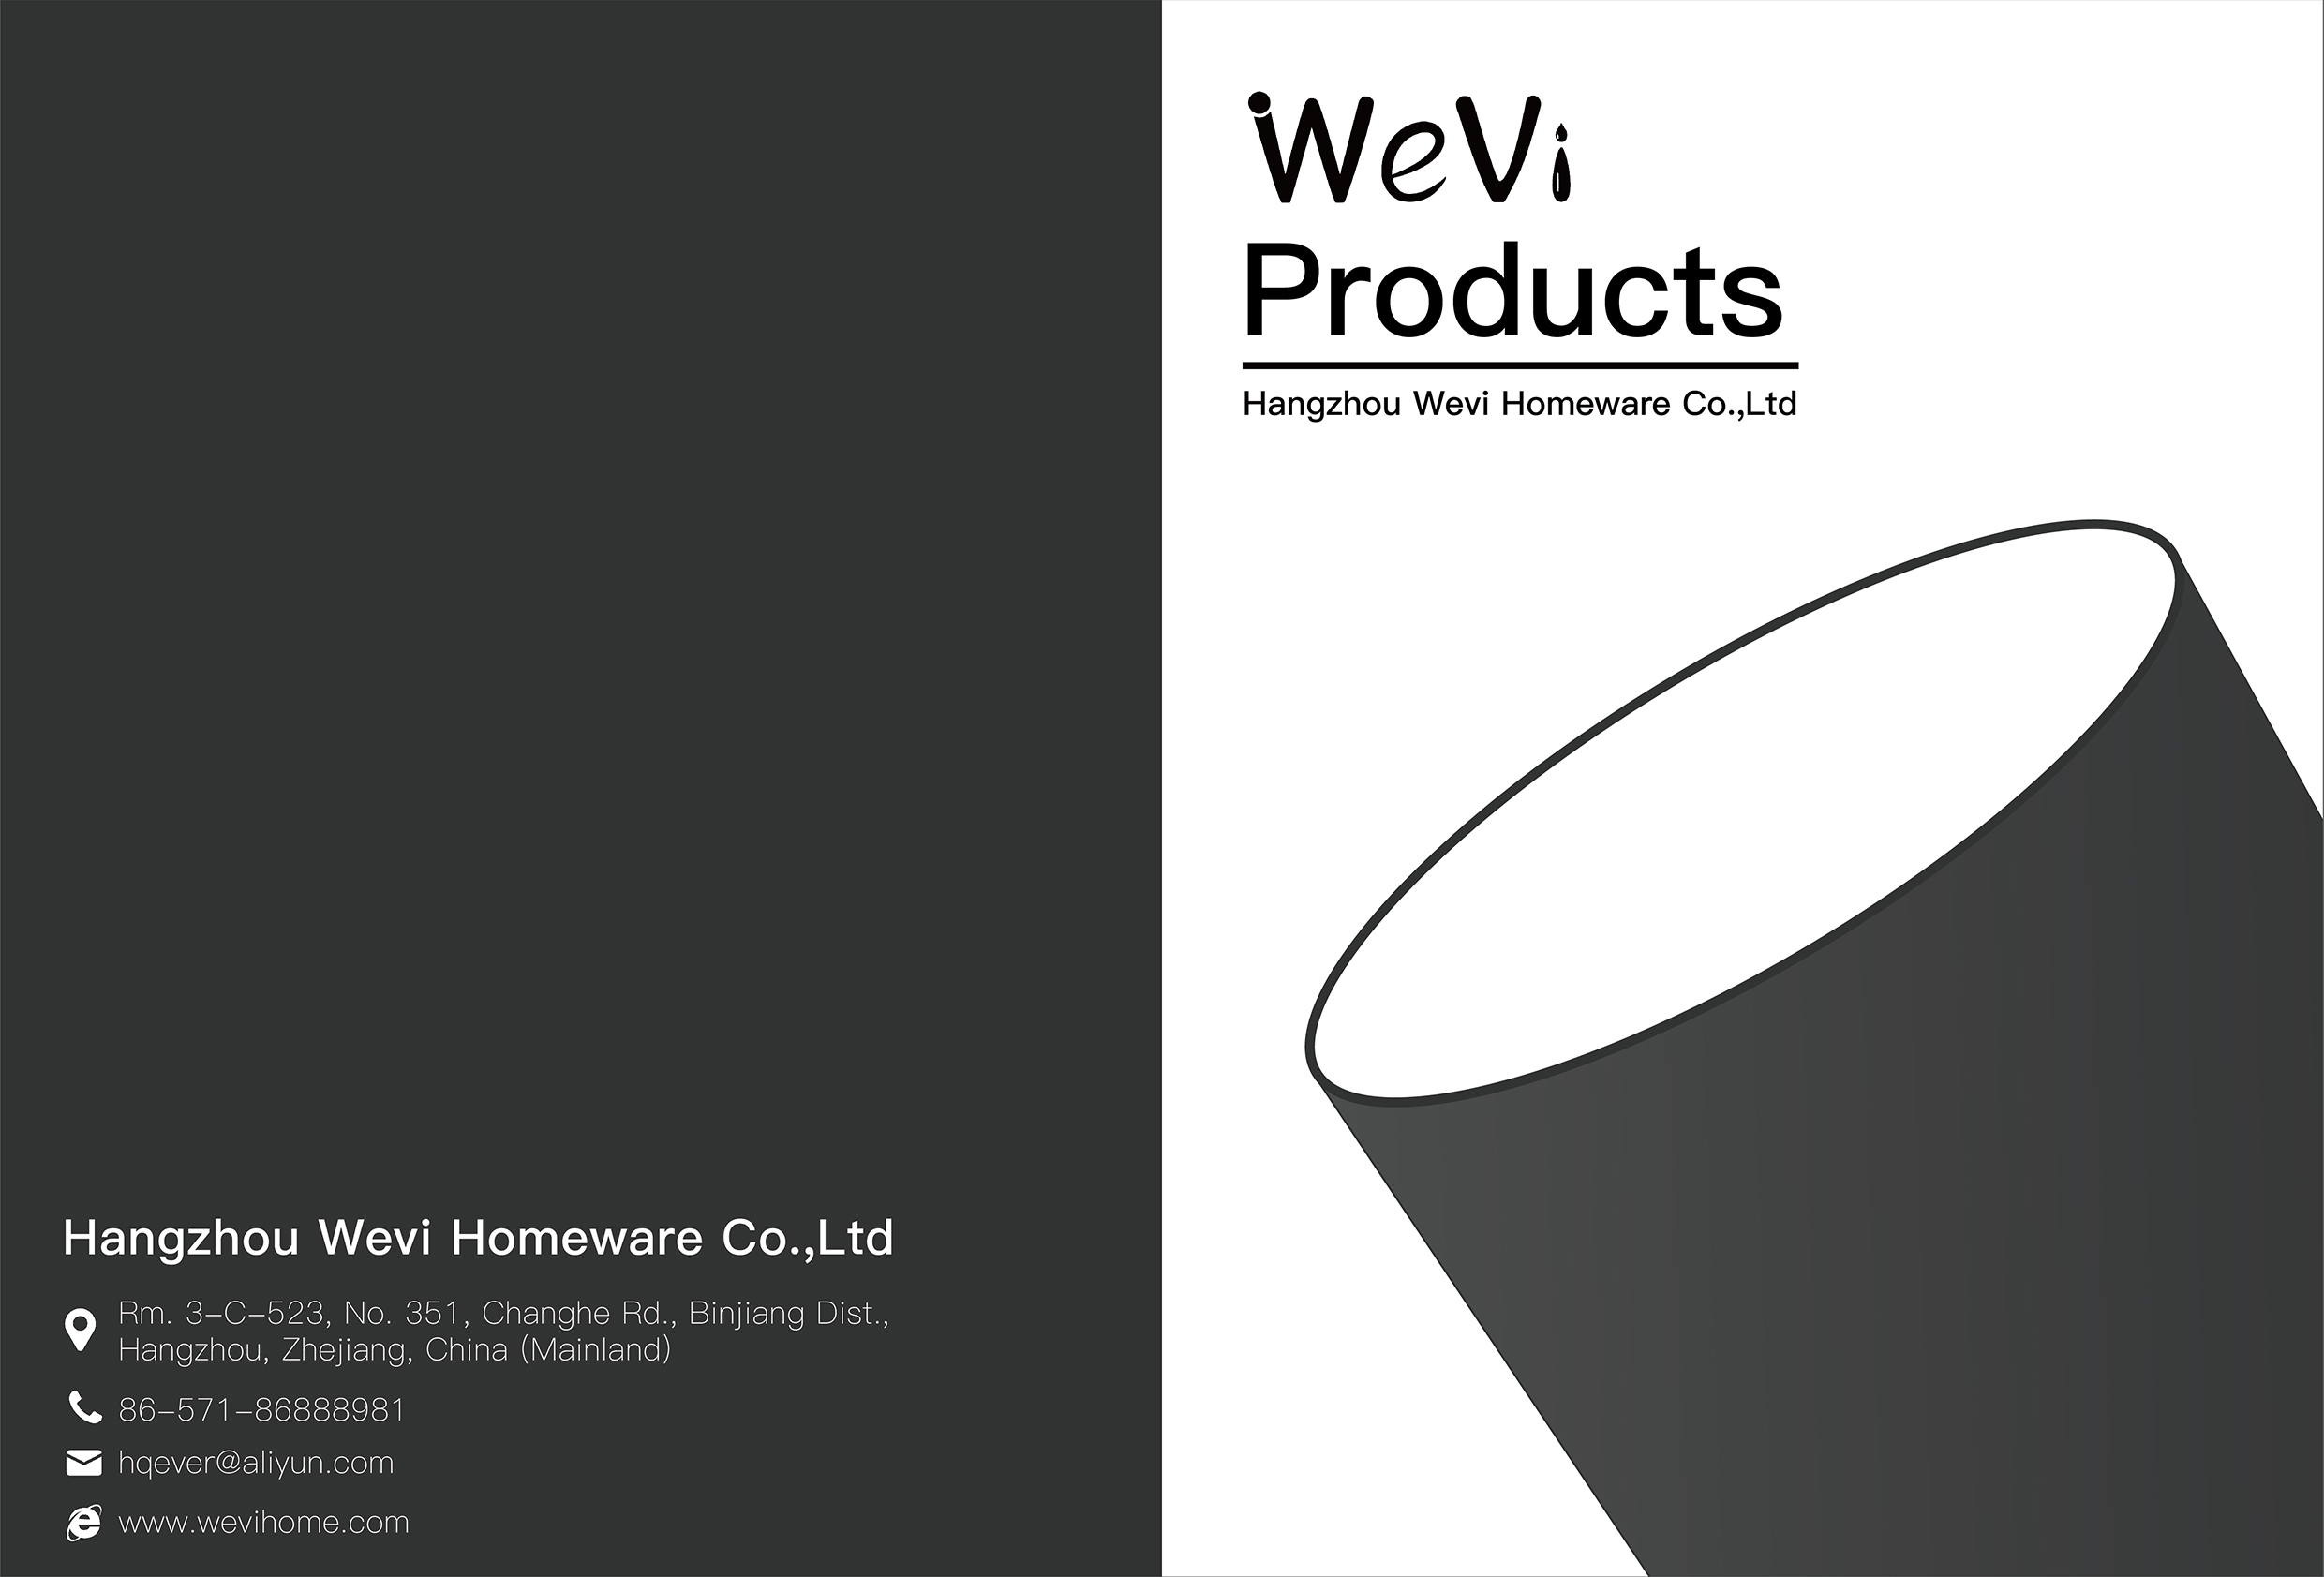 WeVi products catalogue